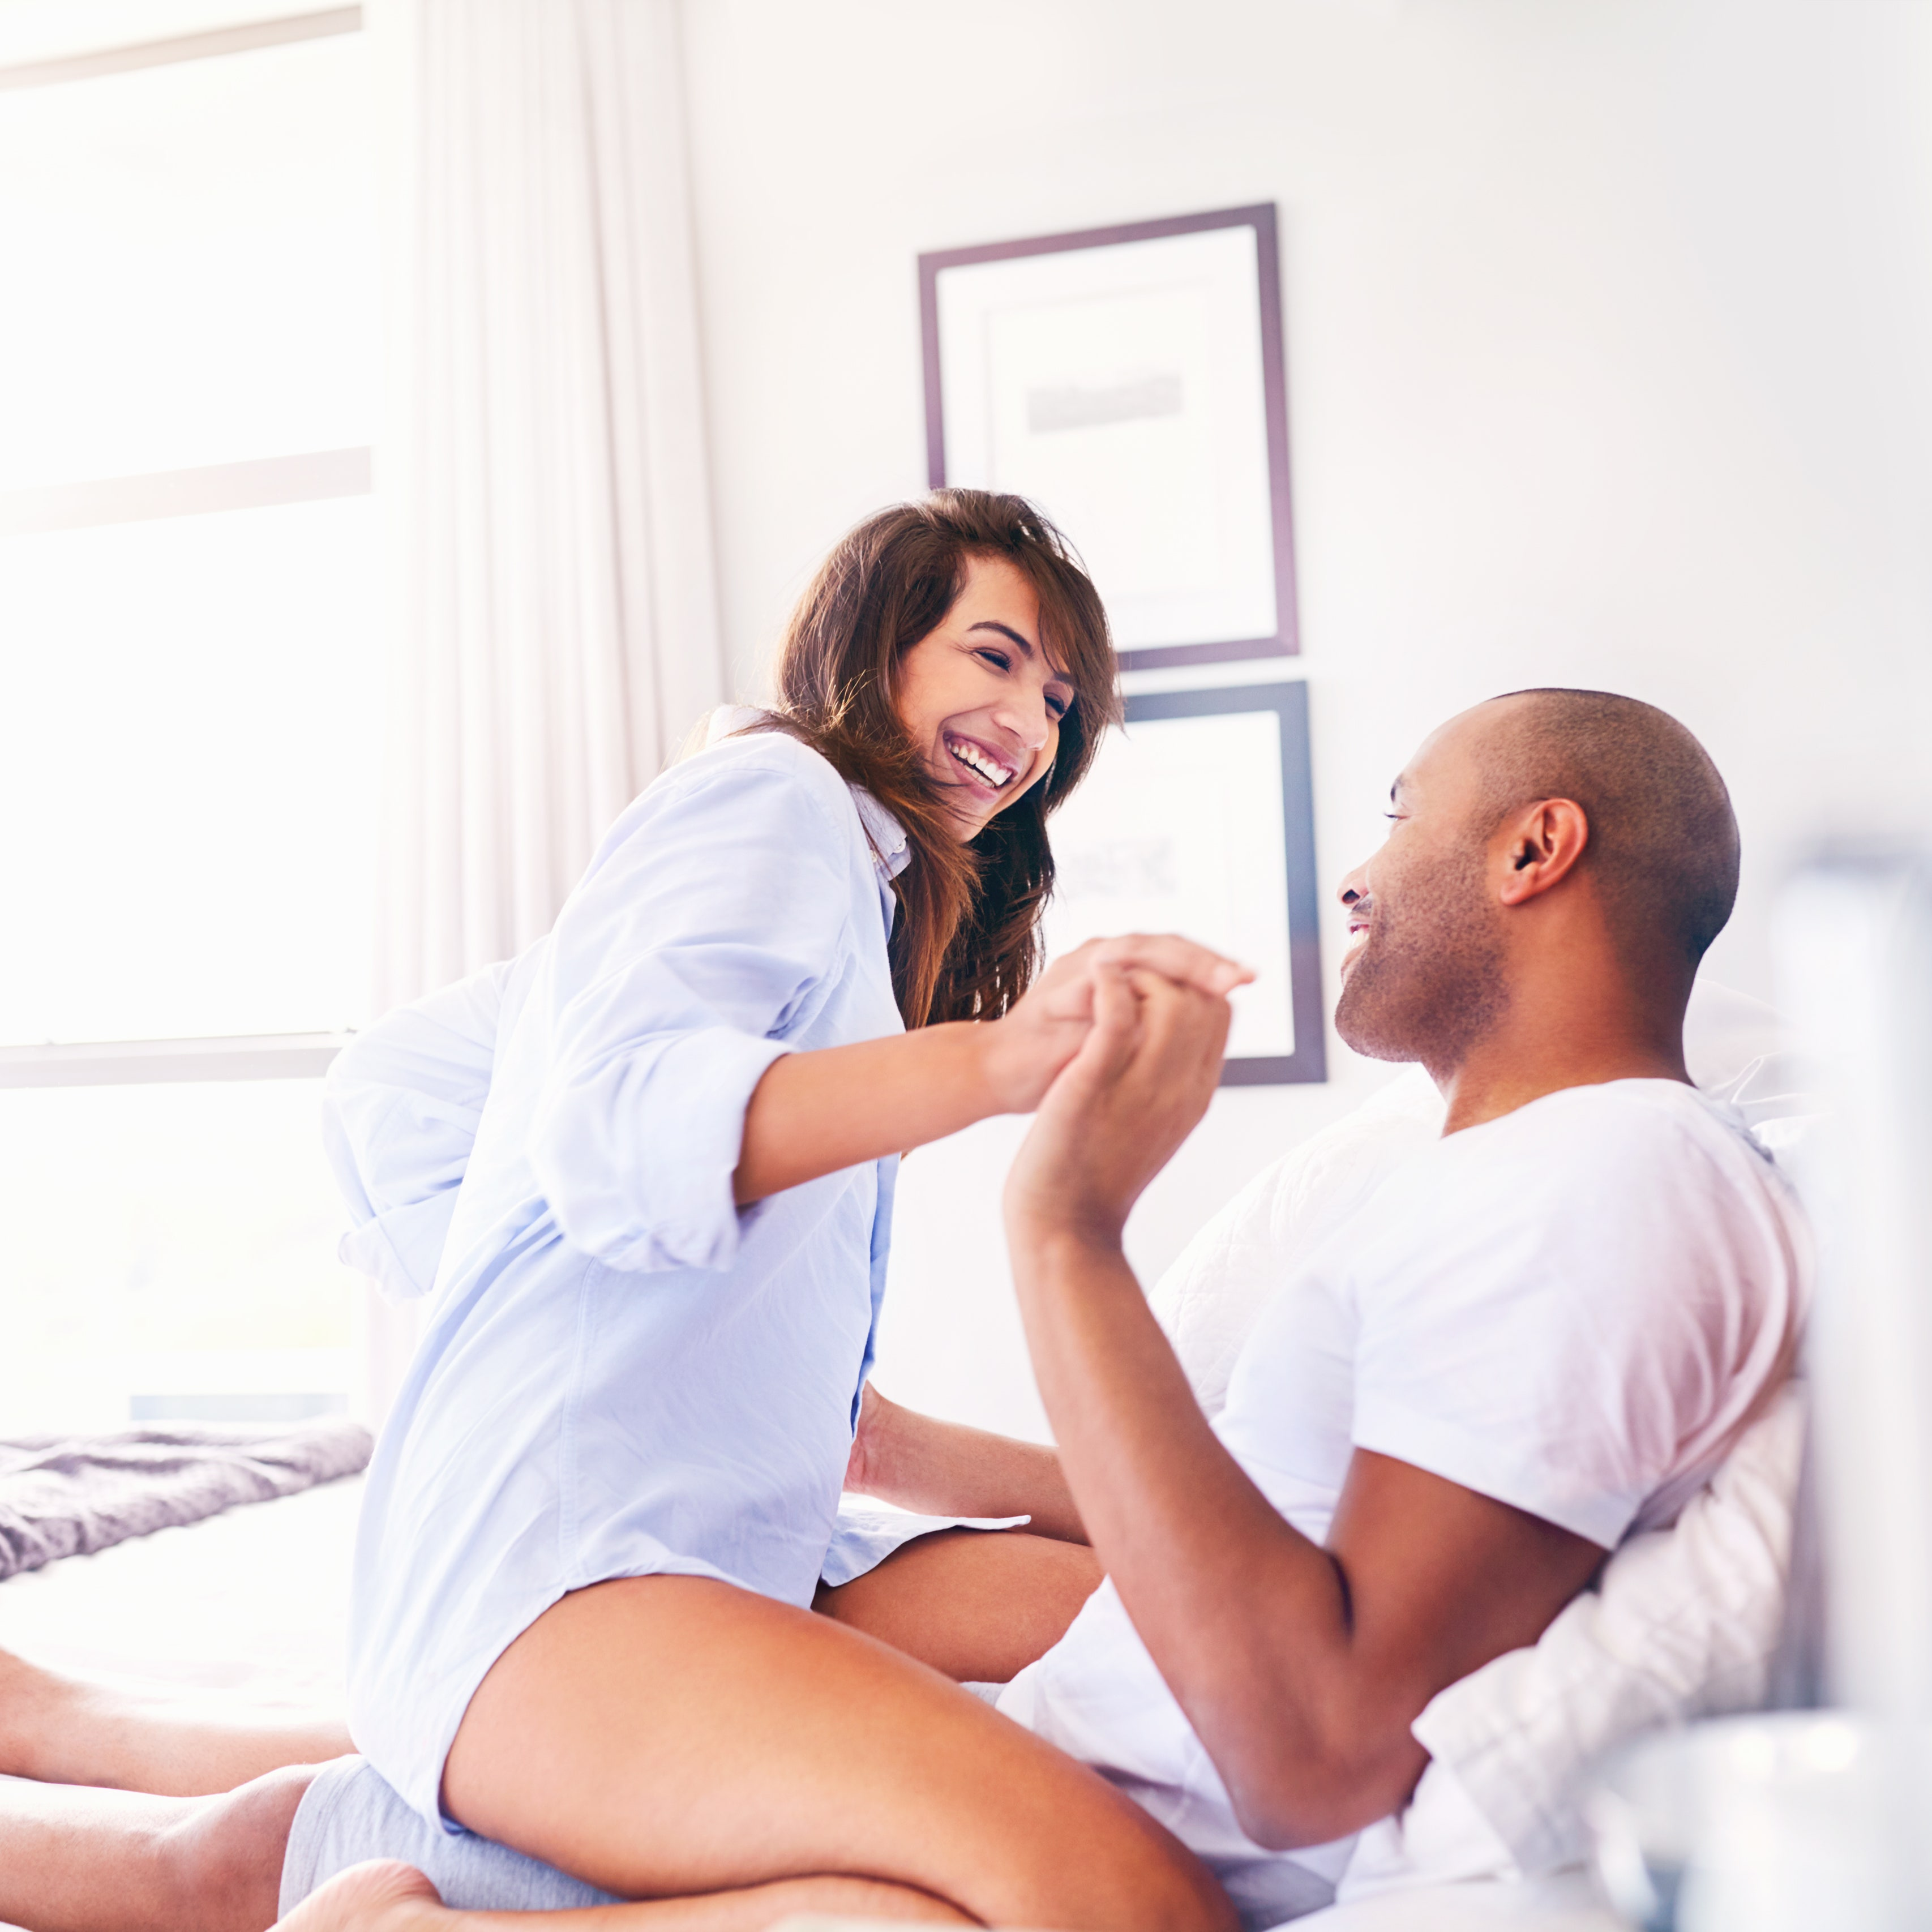 guy face sitting on woman sex images